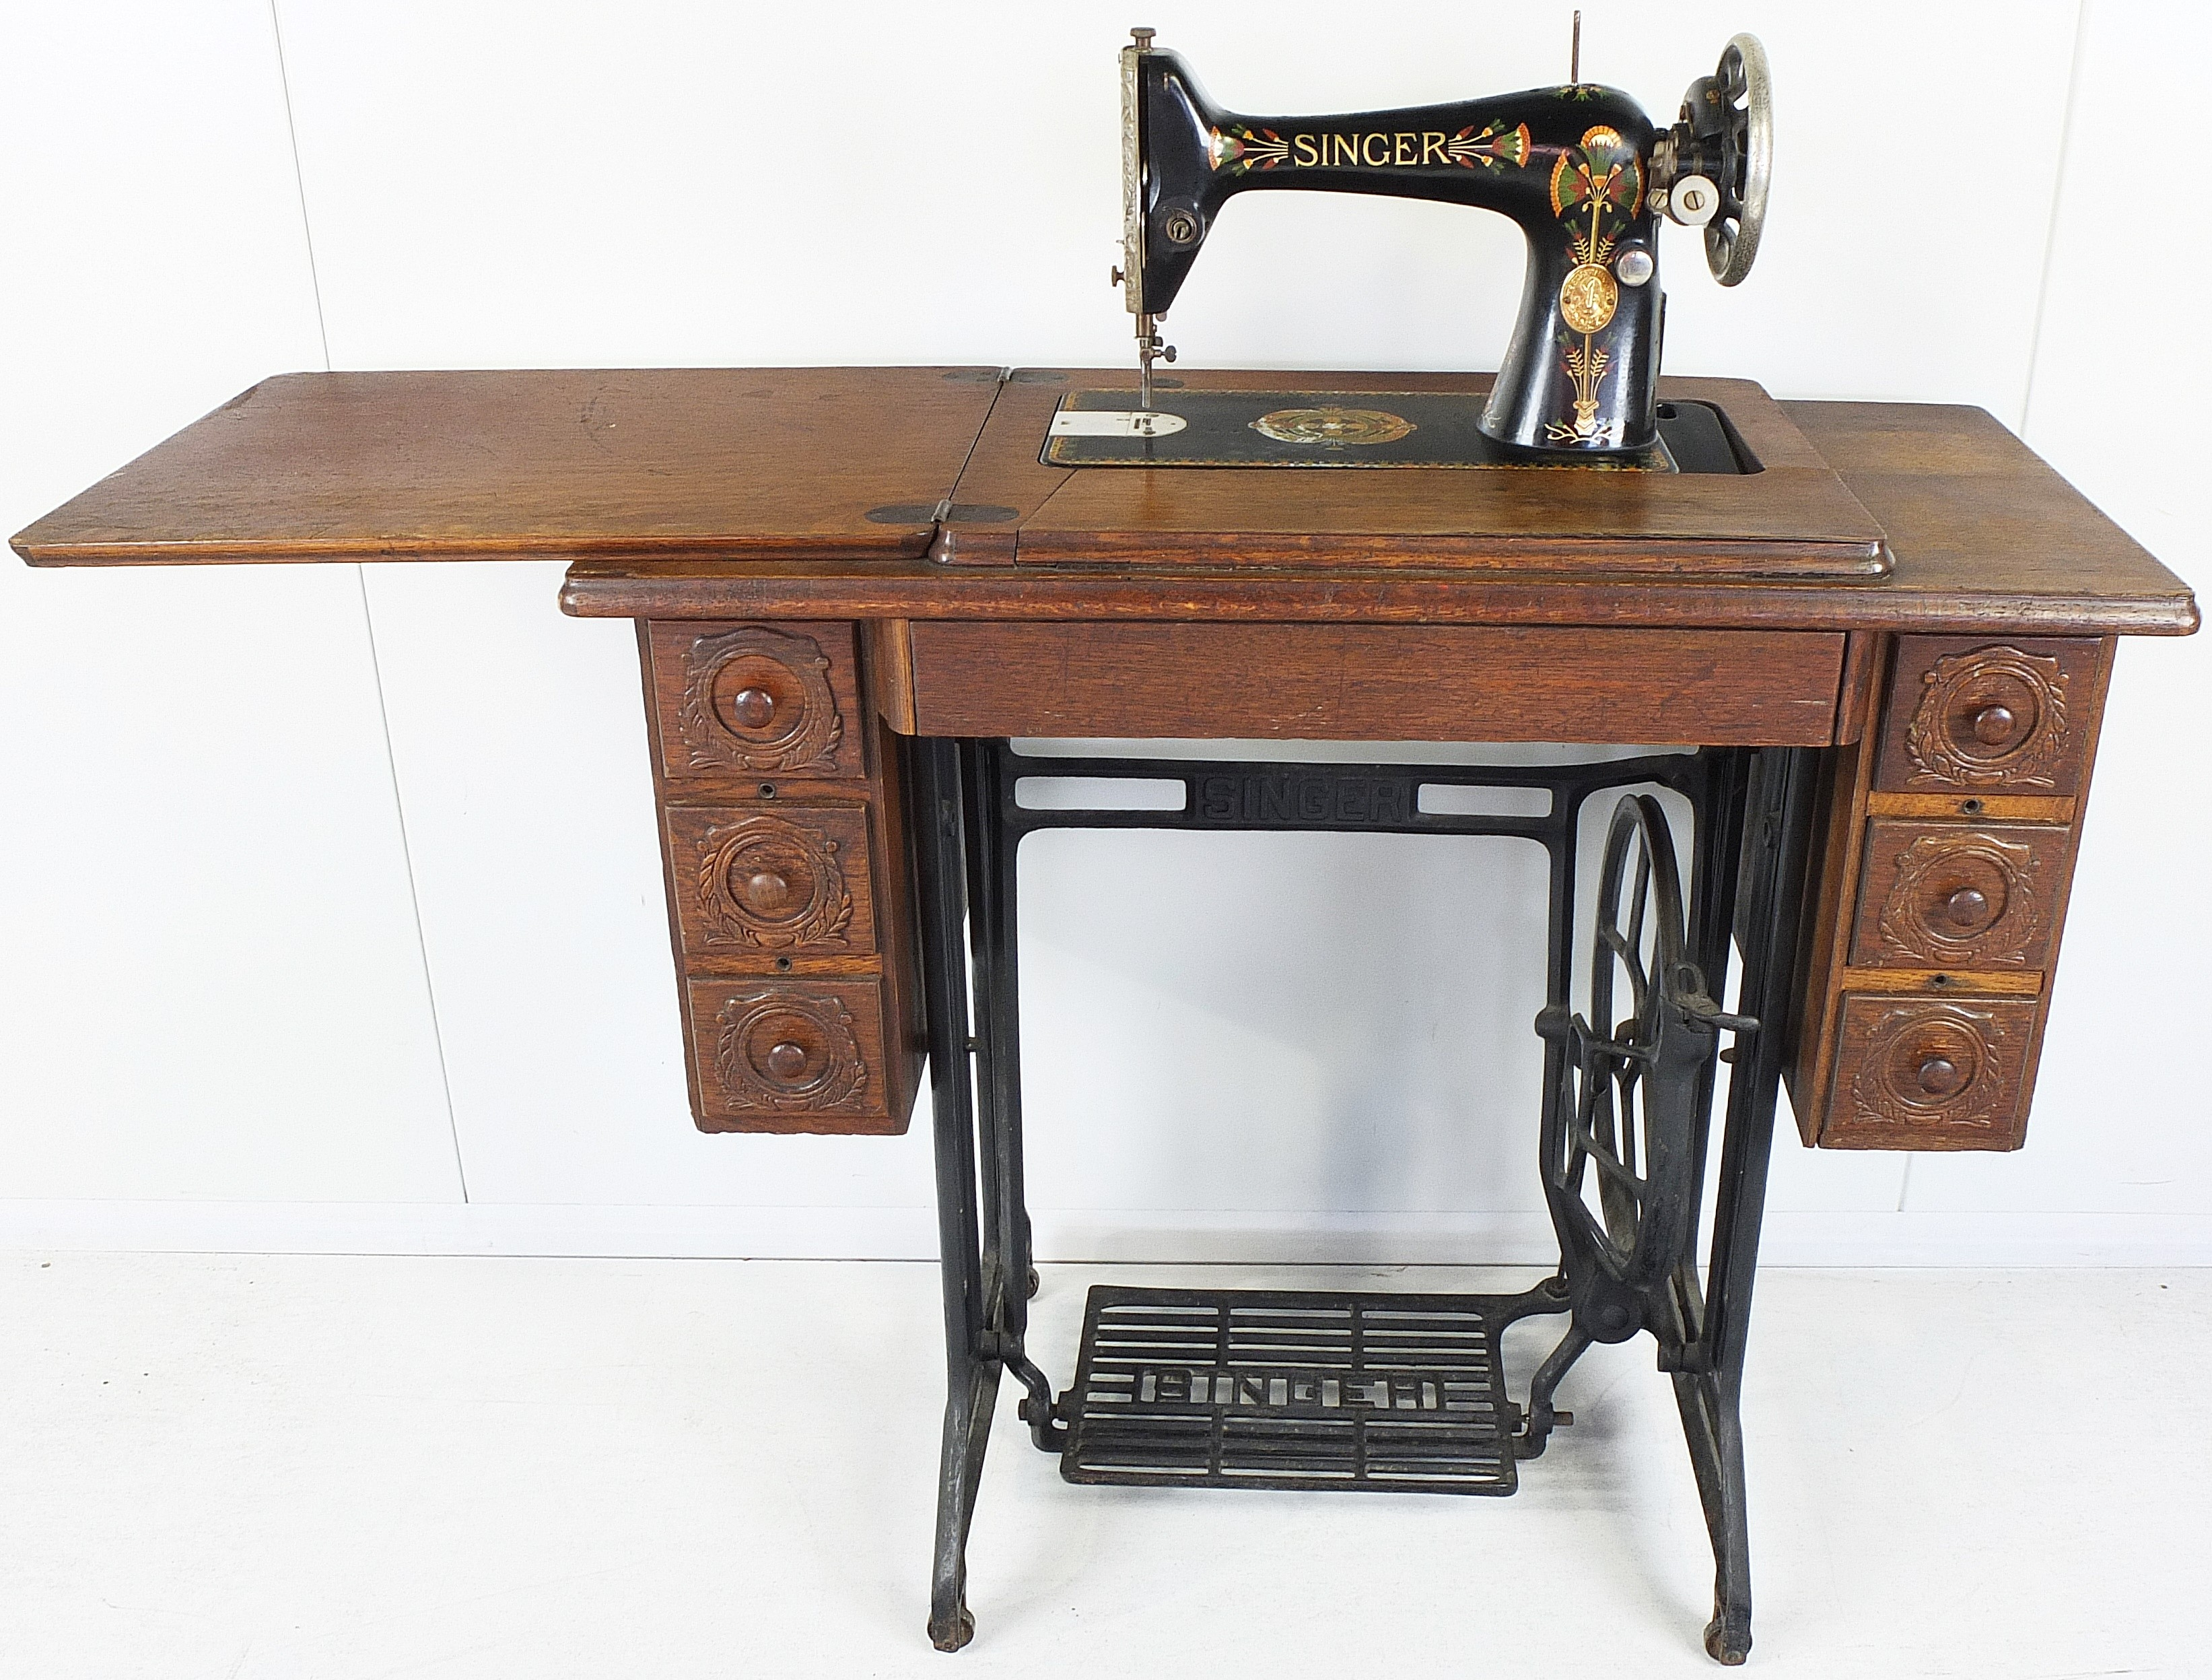 Vintage Singer Sewing Machine and Stand(circa 1935)